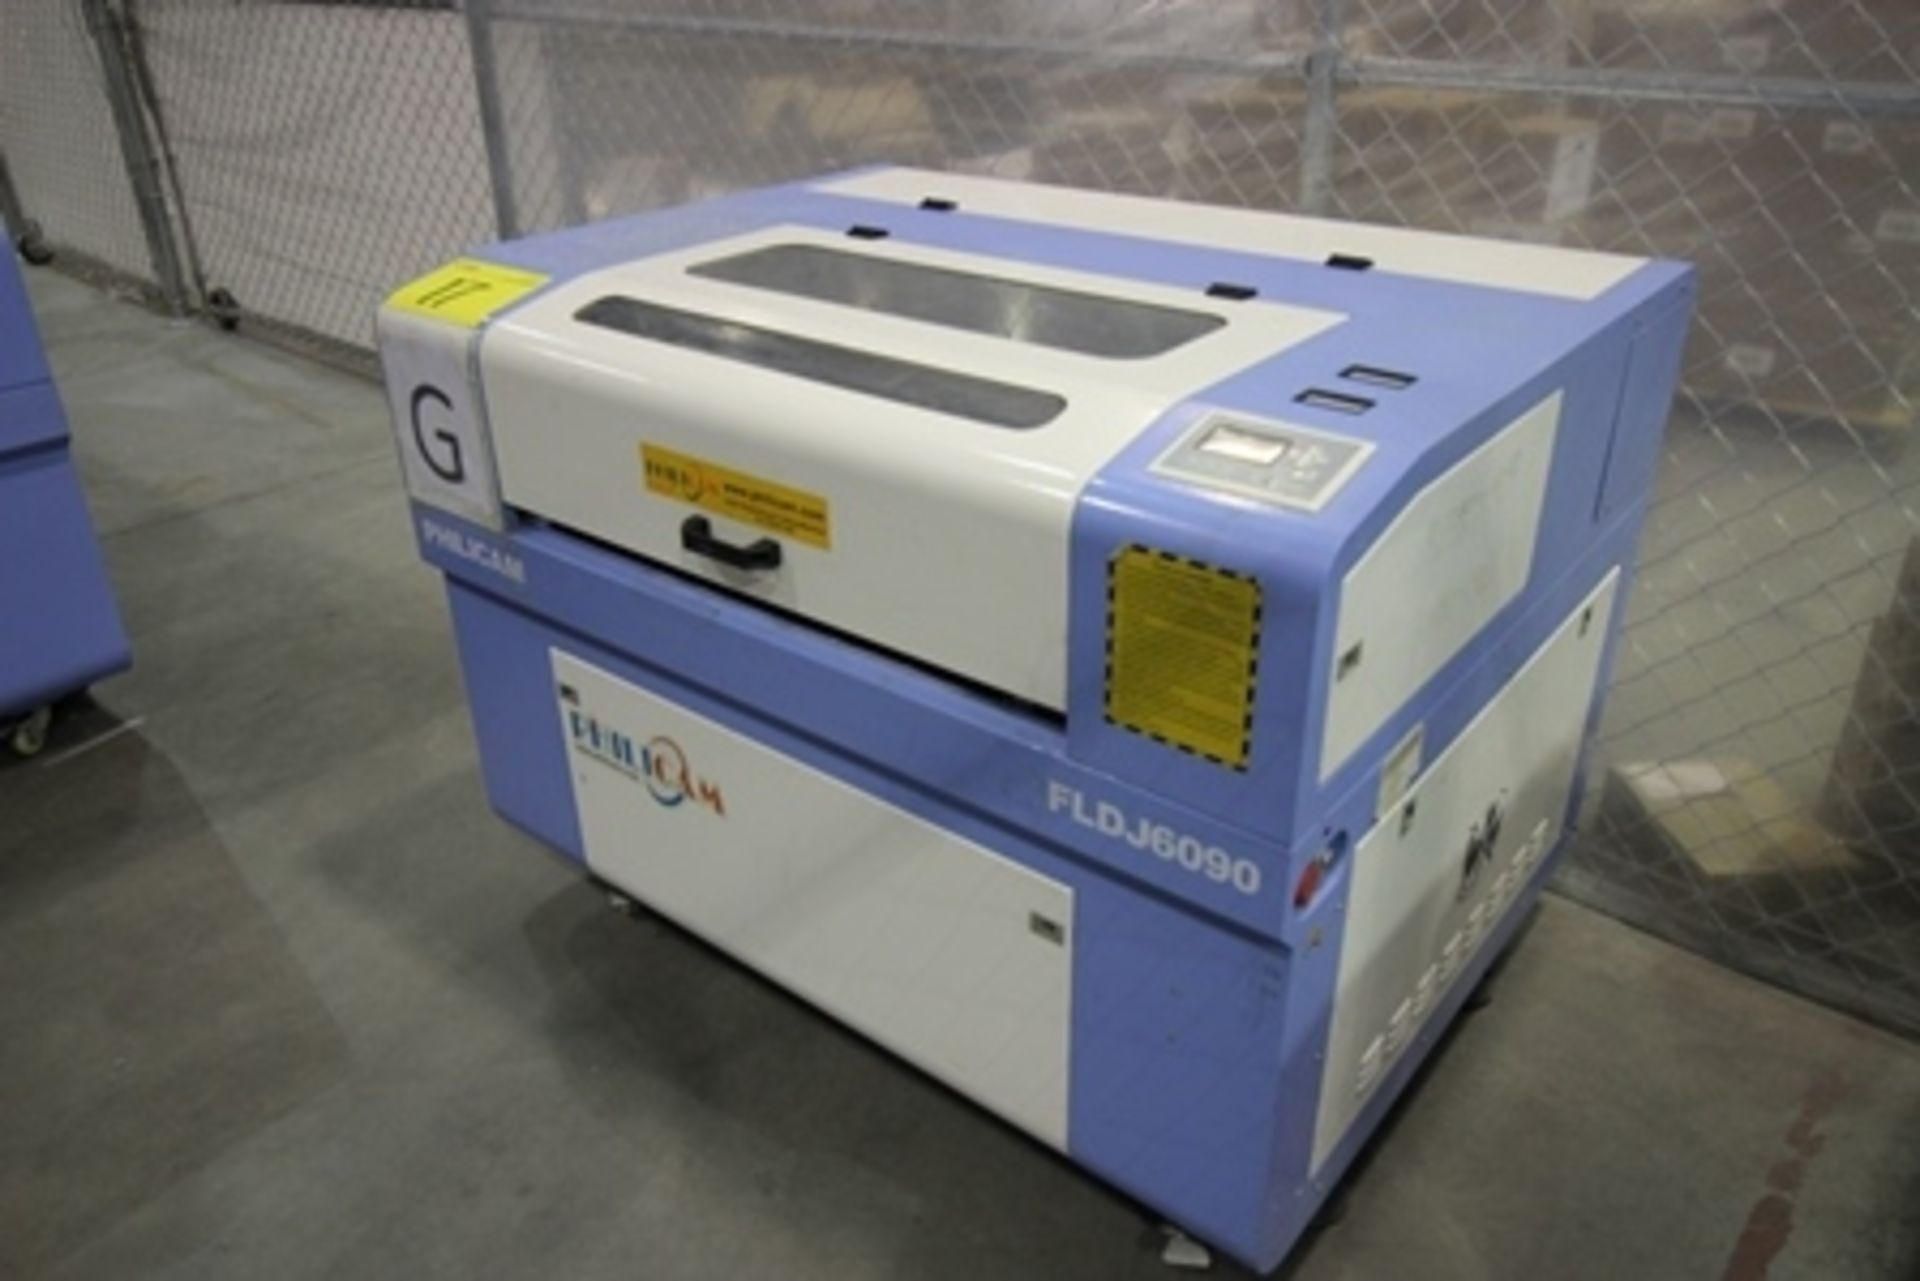 Lot 17 - 2016 Phillican CO2 laser engraver and cutting machine, model 6090. Laser power: 80x2w, 2.2Kw, series